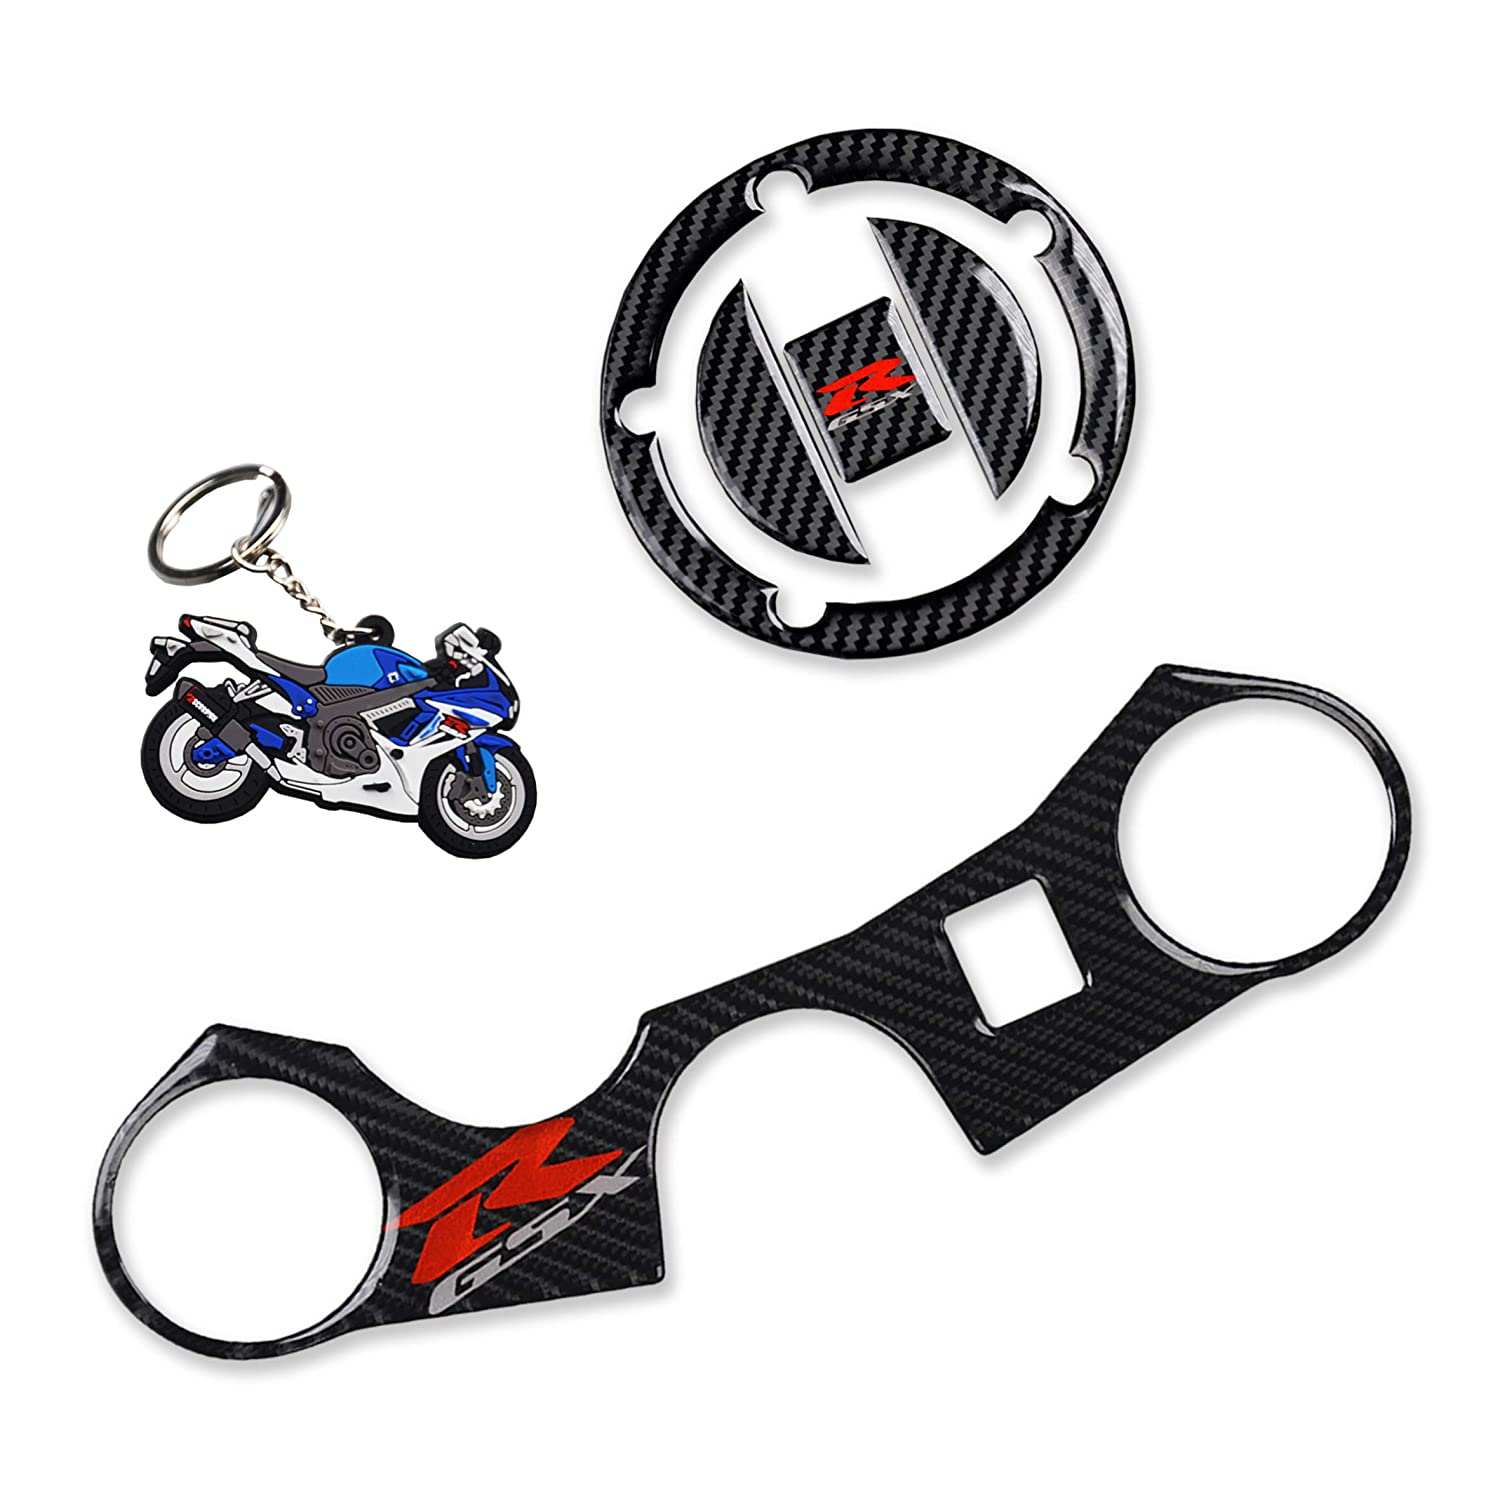 Decal Stickers for GSXR 600 GSXR 750 GSXR 1000 K6 K7 K8 K9 L1 2006-2017 3 Pcs Per Set Keychain and Triple Tree Front End Upper Top Clamp REVSOSTAR Real Carbon Look Gas Cap Fuel Cap